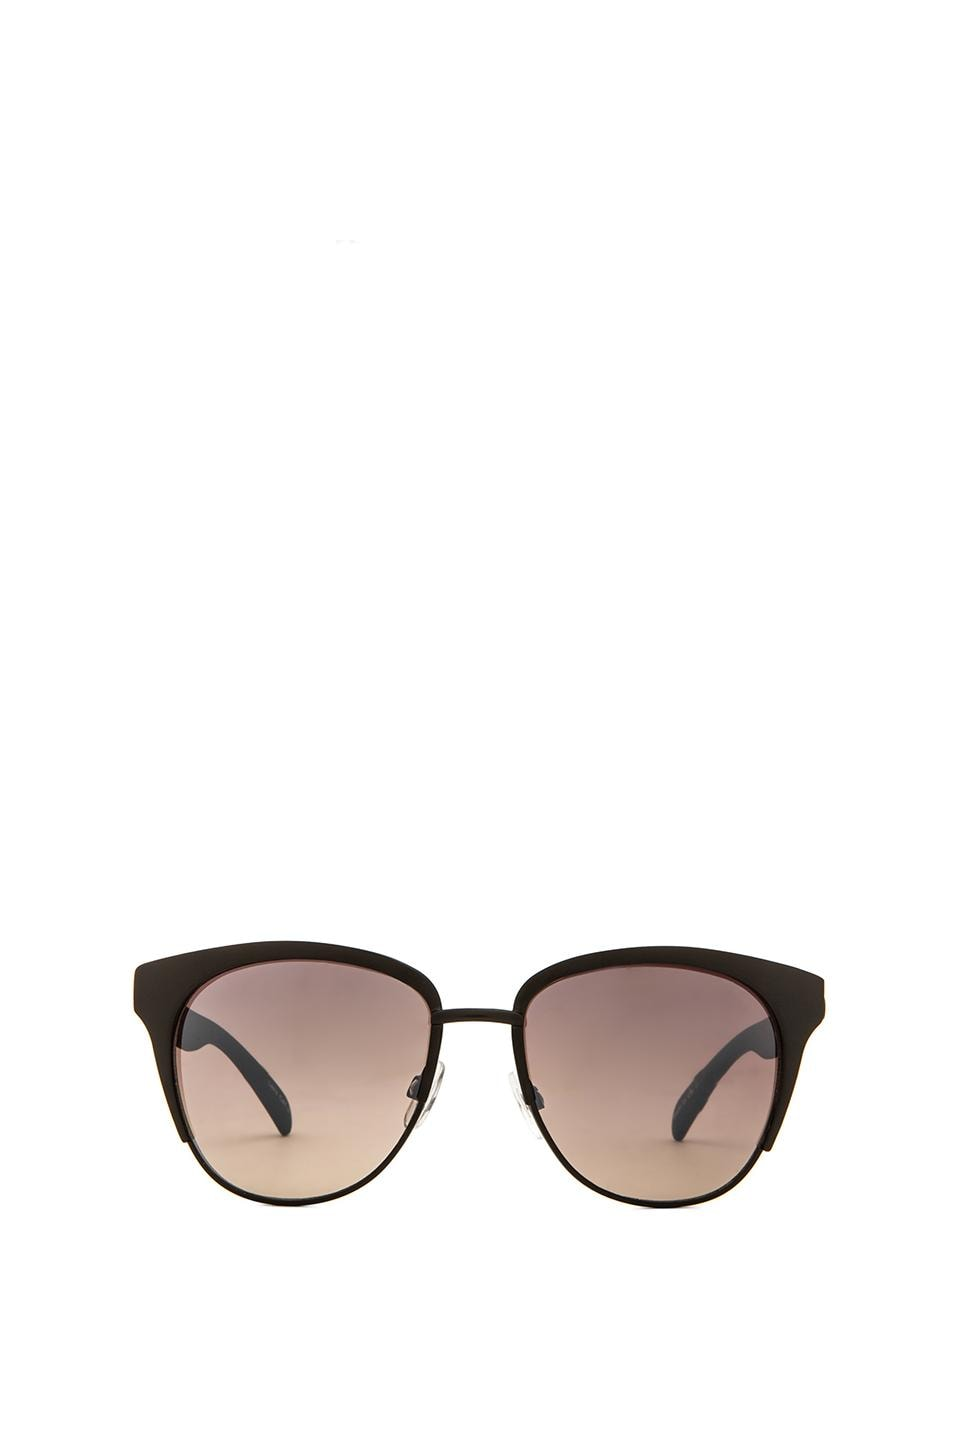 Quay Zoe Sunglasses in Black